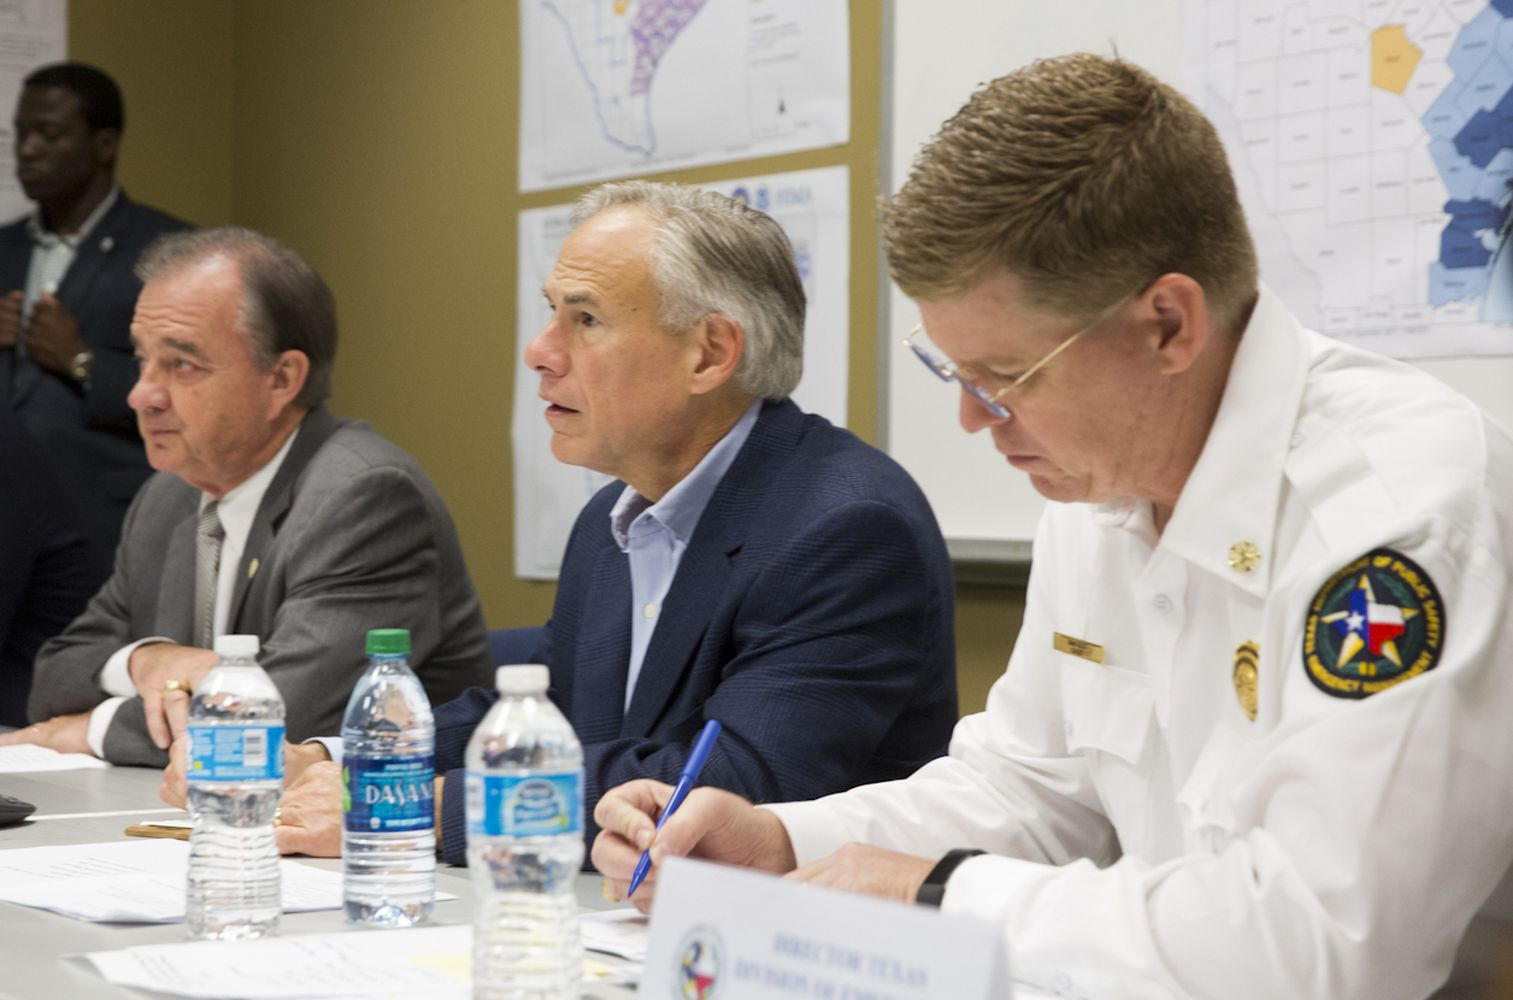 John Sharp, Texas A&M University chancellor and head of the new Governor's Commission to Rebuild Texas, Gov. Greg Abbott and Nim Kidd, Chief of Texas Emergency Management, get briefed on recovery efforts after Hurricane Harvey at the FEMA Joint Field Office in Austin on Sept. 14, 2017.